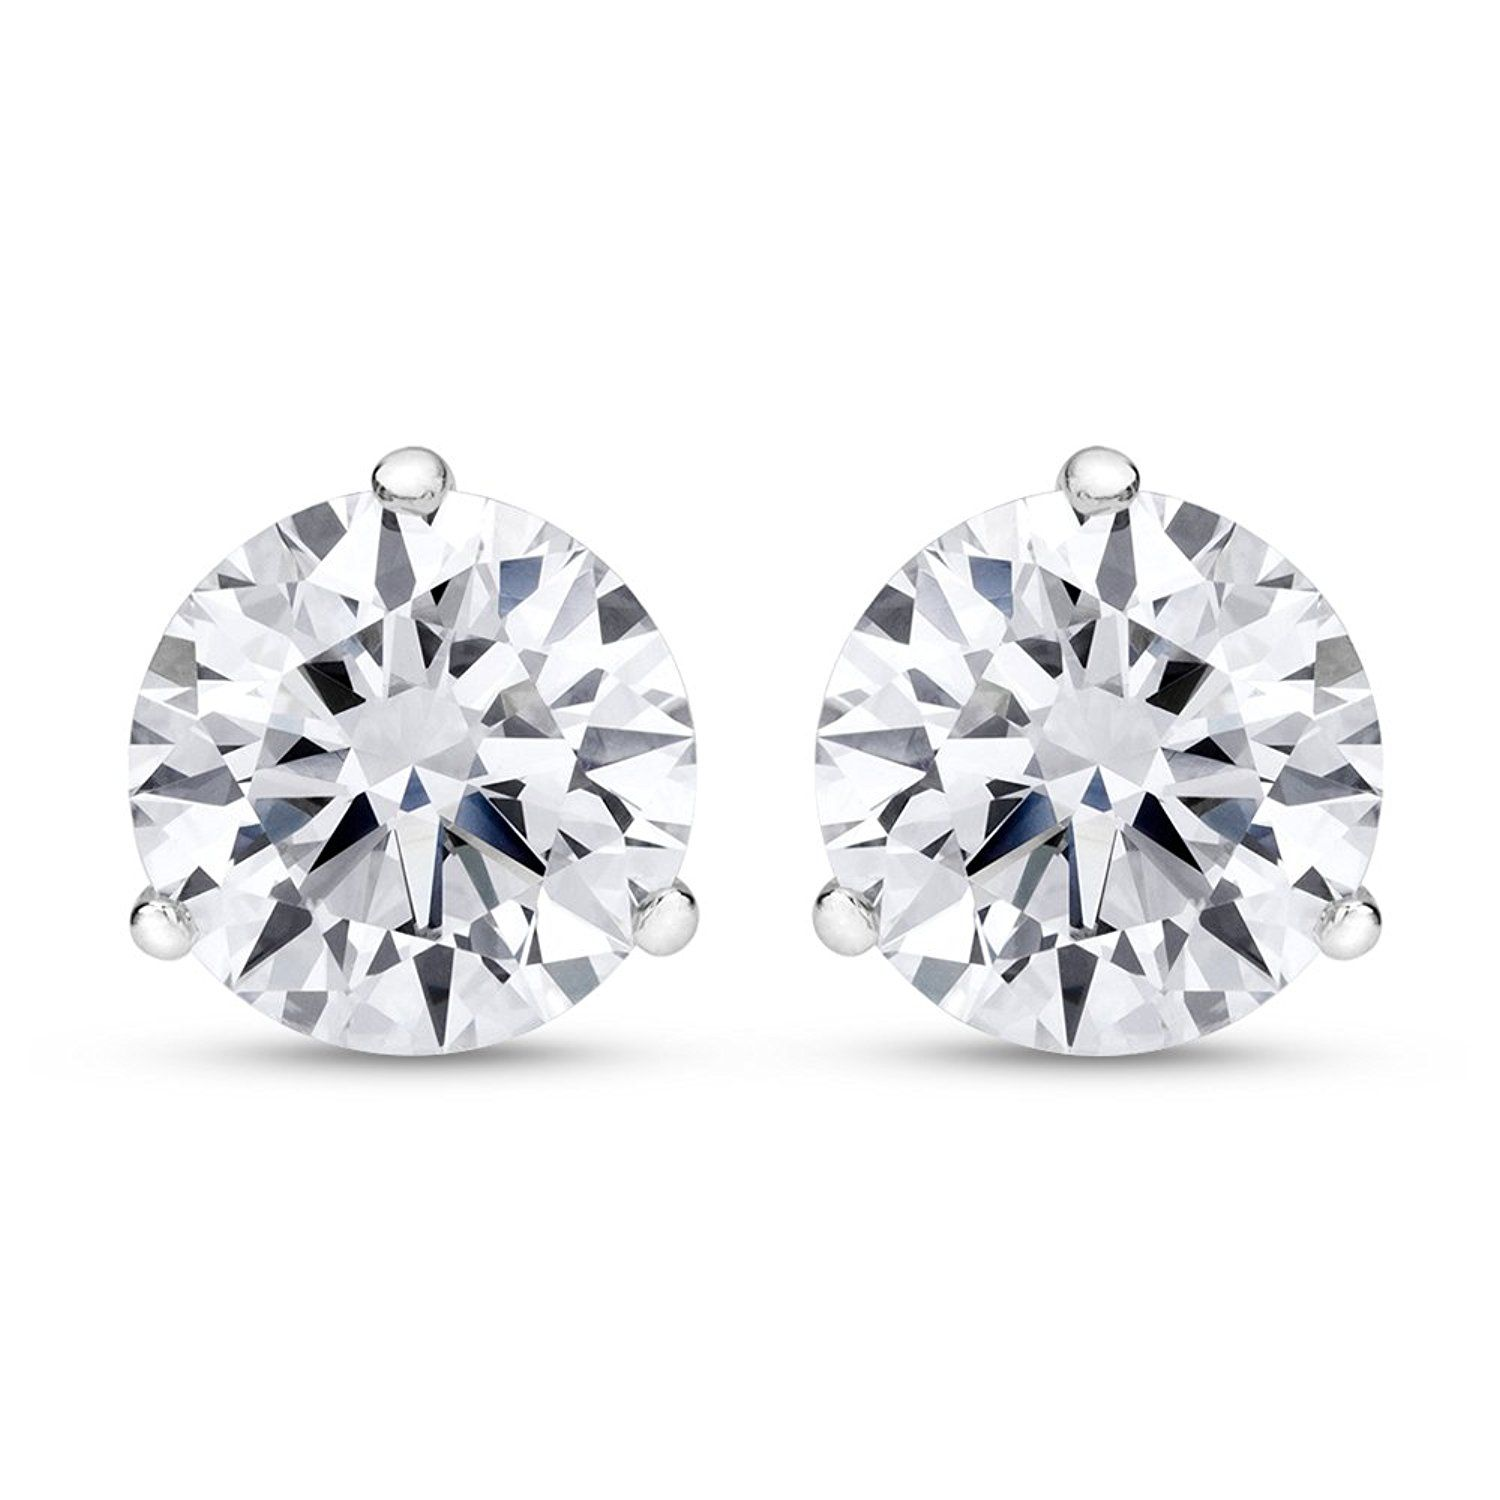 buy diamond earrings stud studs prong